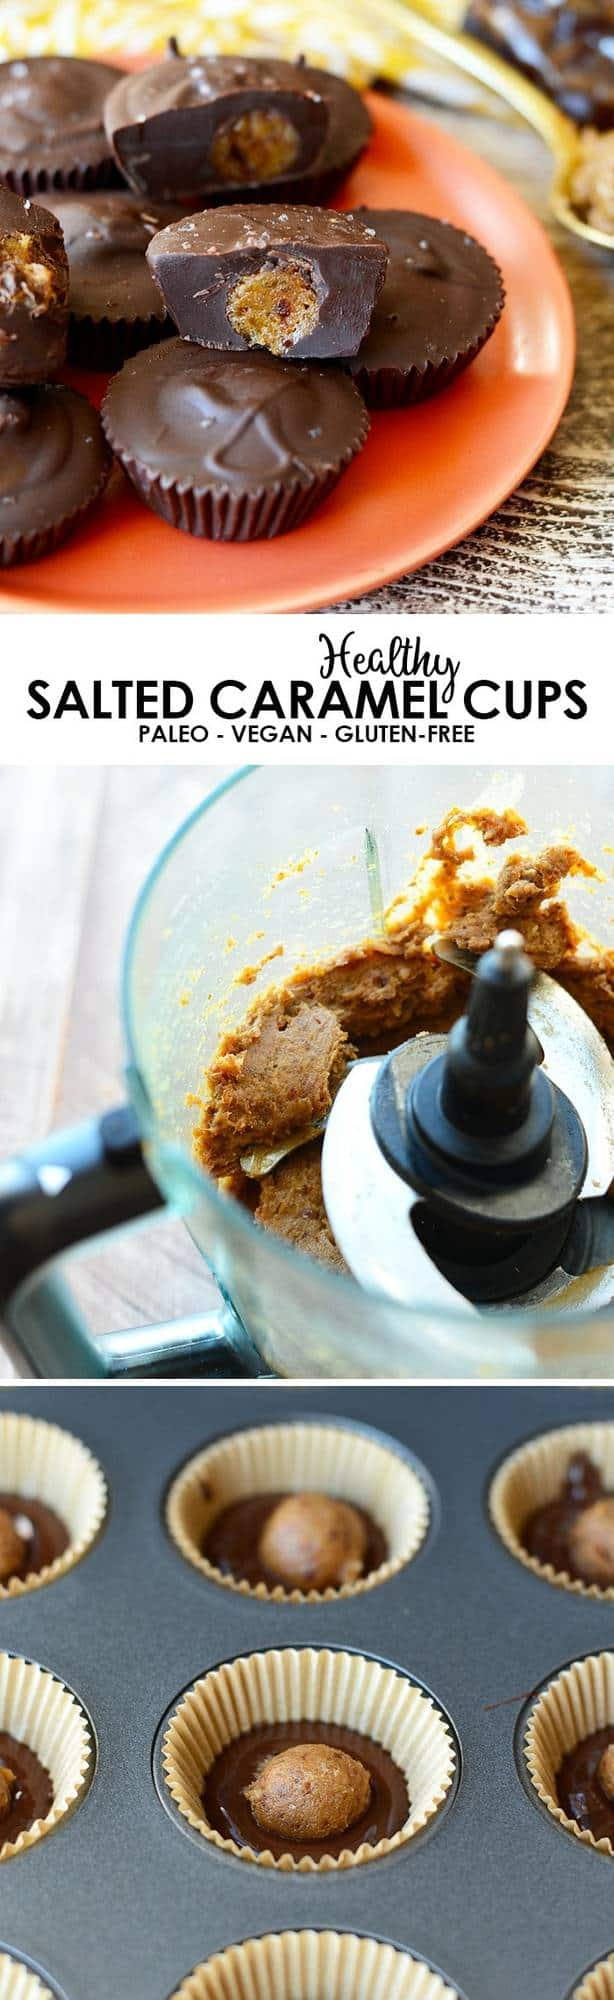 Healthy Salted Caramel Cups, it's a real thing! All you need are 4 simple ingredients to make this decadent dessert that's paleo and vegan-friendly!